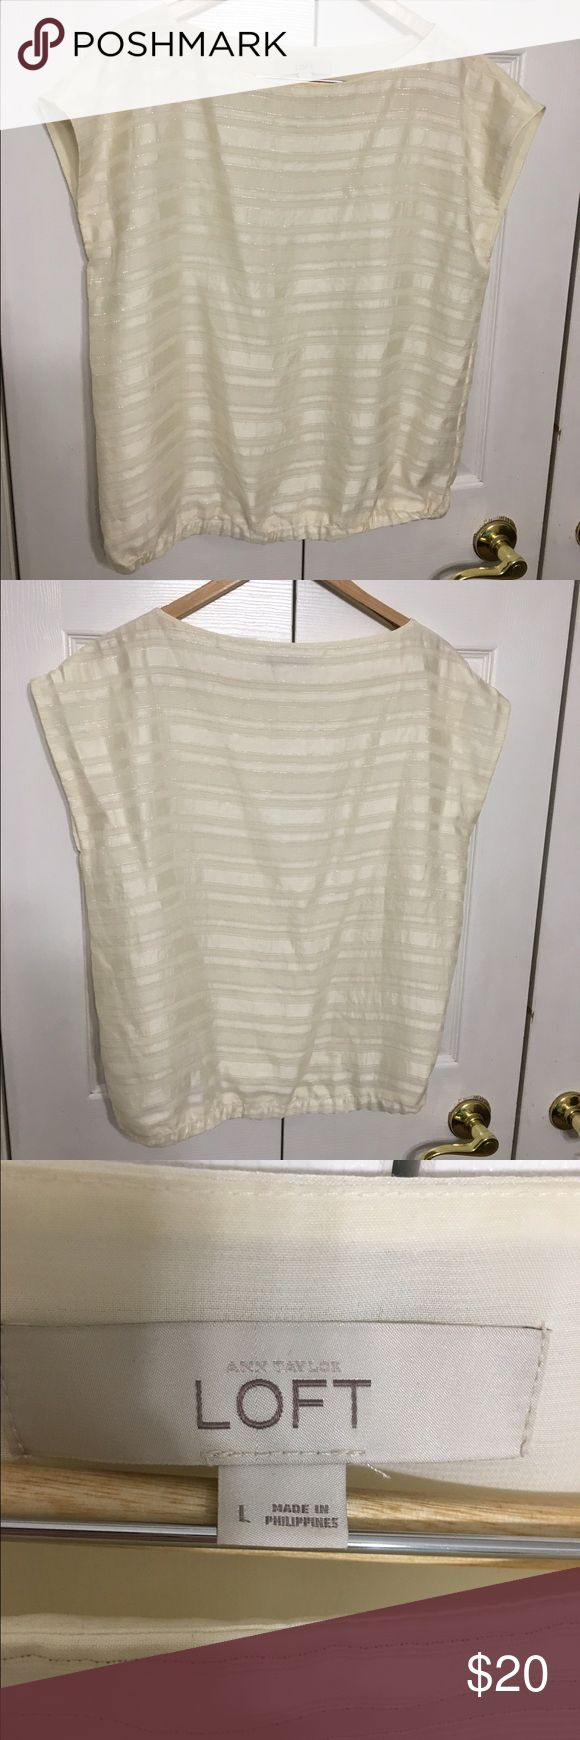 Ann Taylor LOFT Cream and Silver blouse Beautiful cream blouse with silver metallic stitched stripes. Elastic banded bottom. Never worn. LOFT Tops Blouses